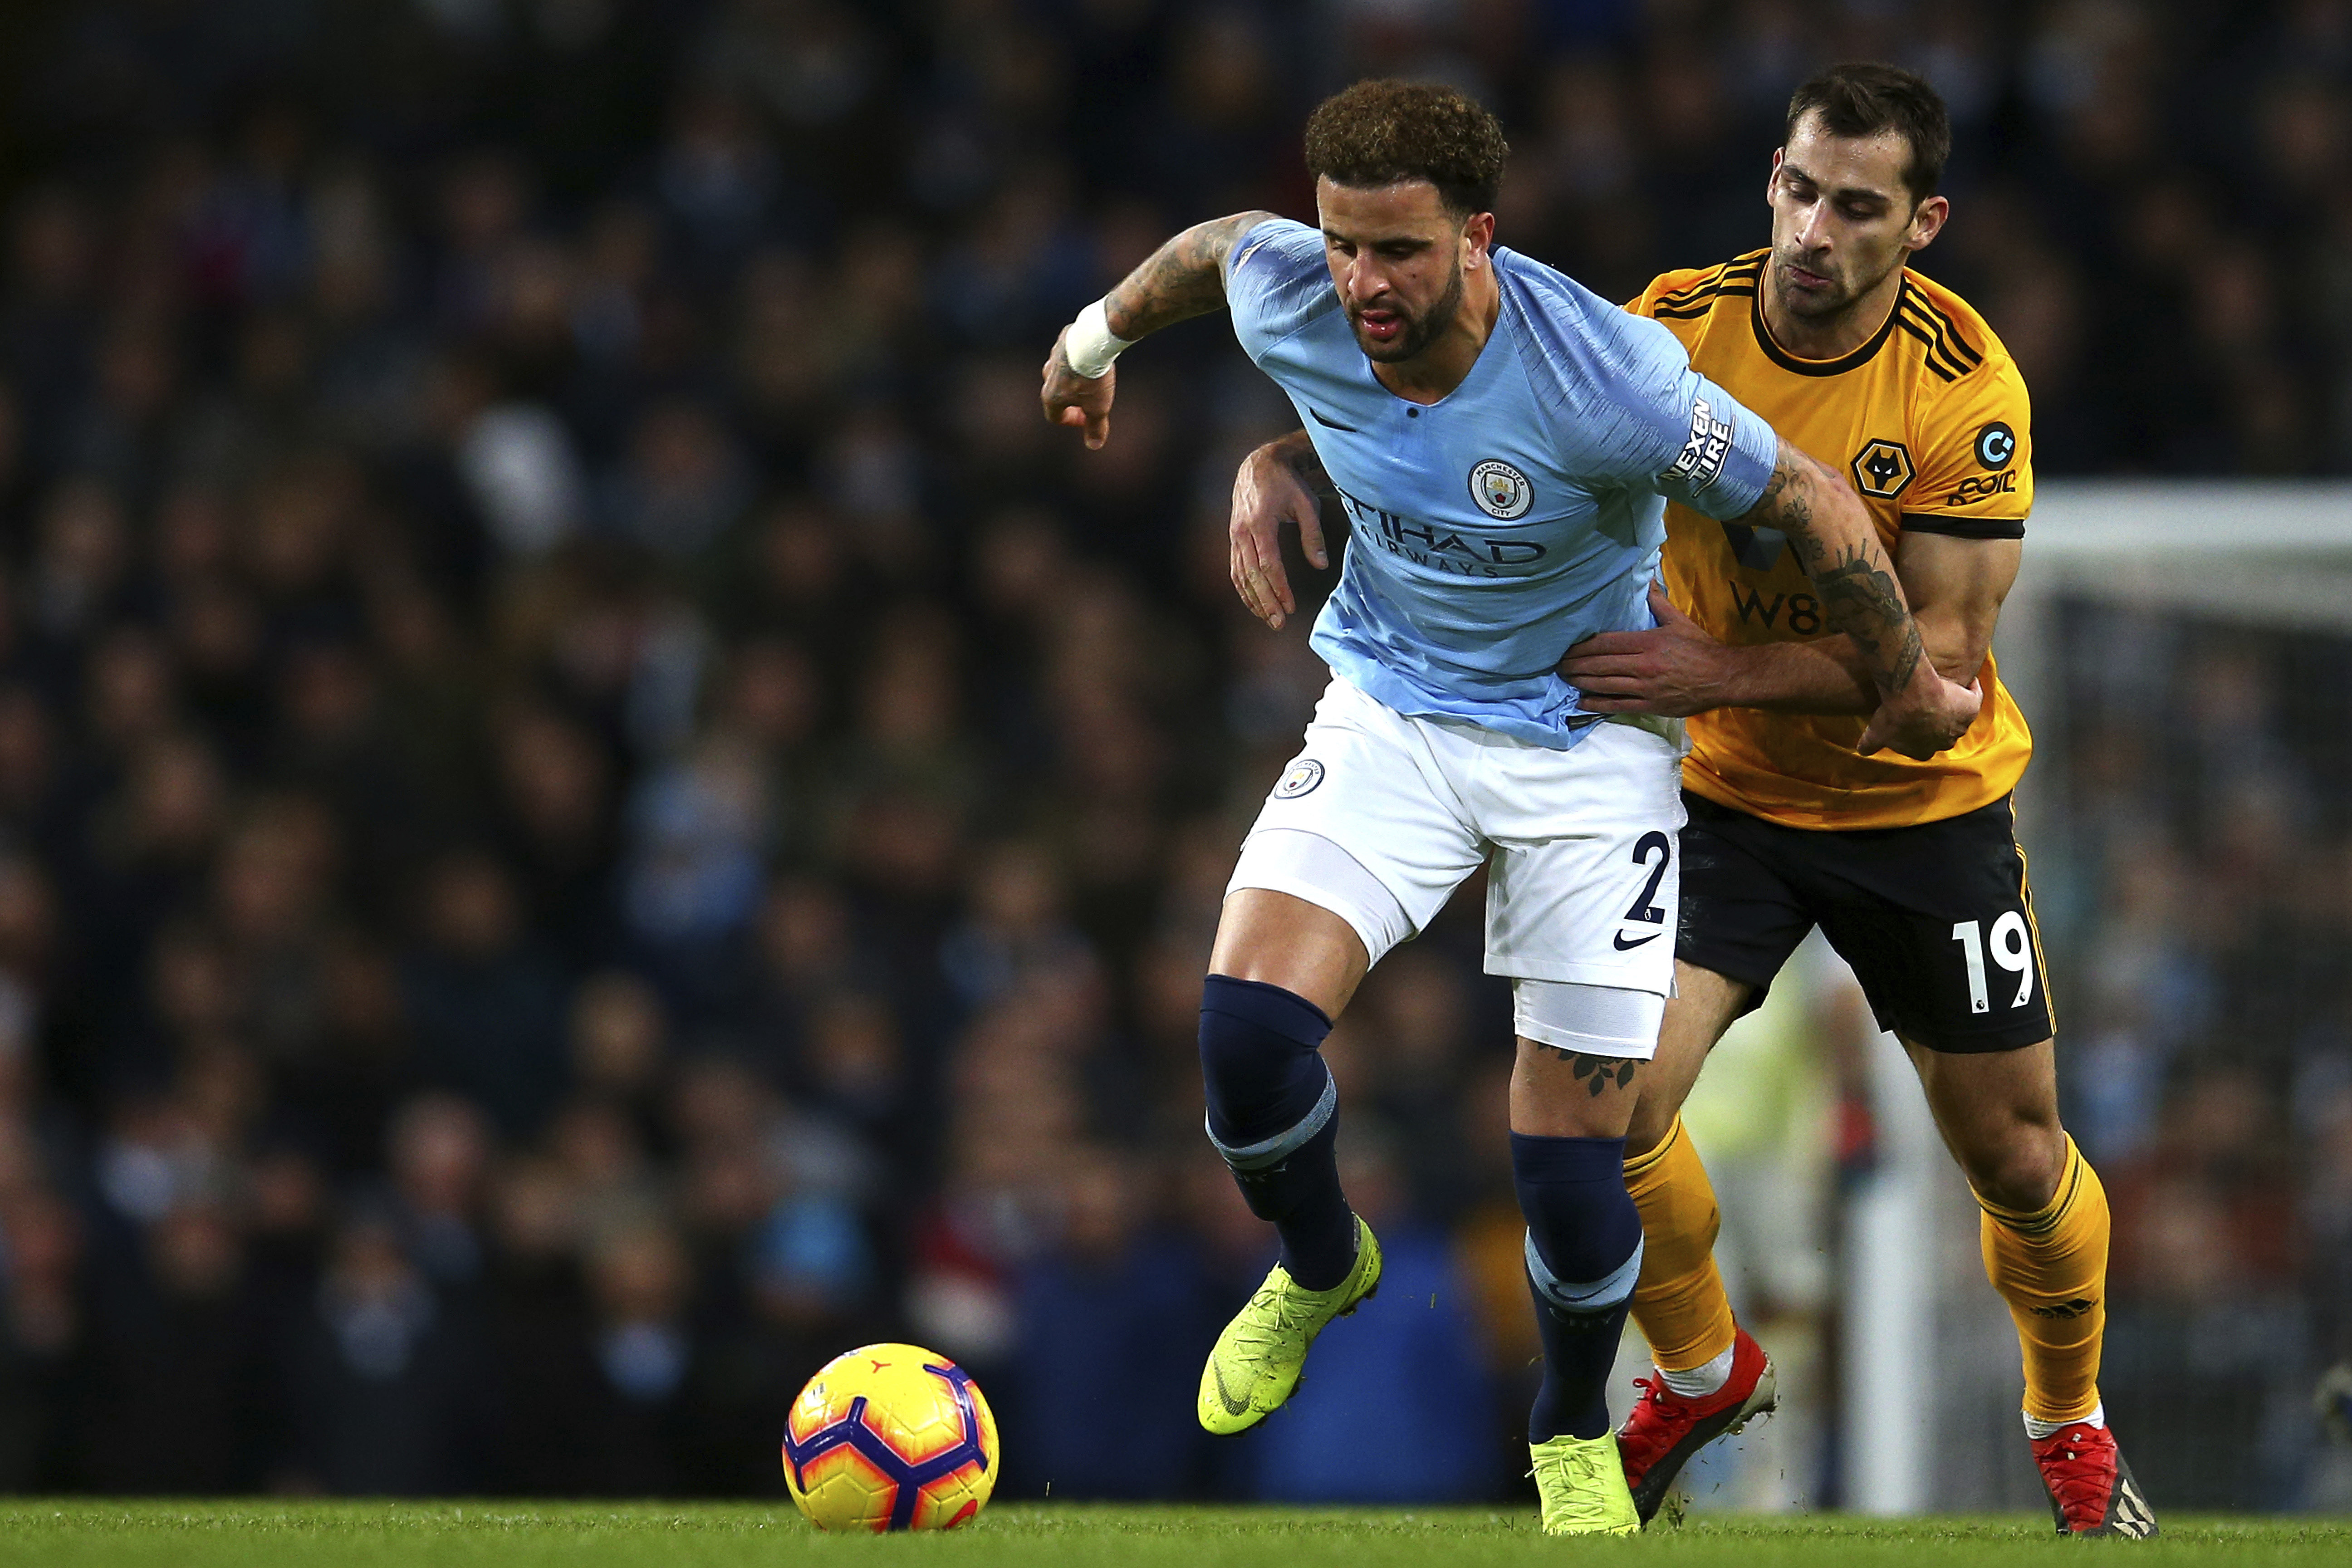 Kyle Walker's form for City hasn't been great recently. Image: PA Images